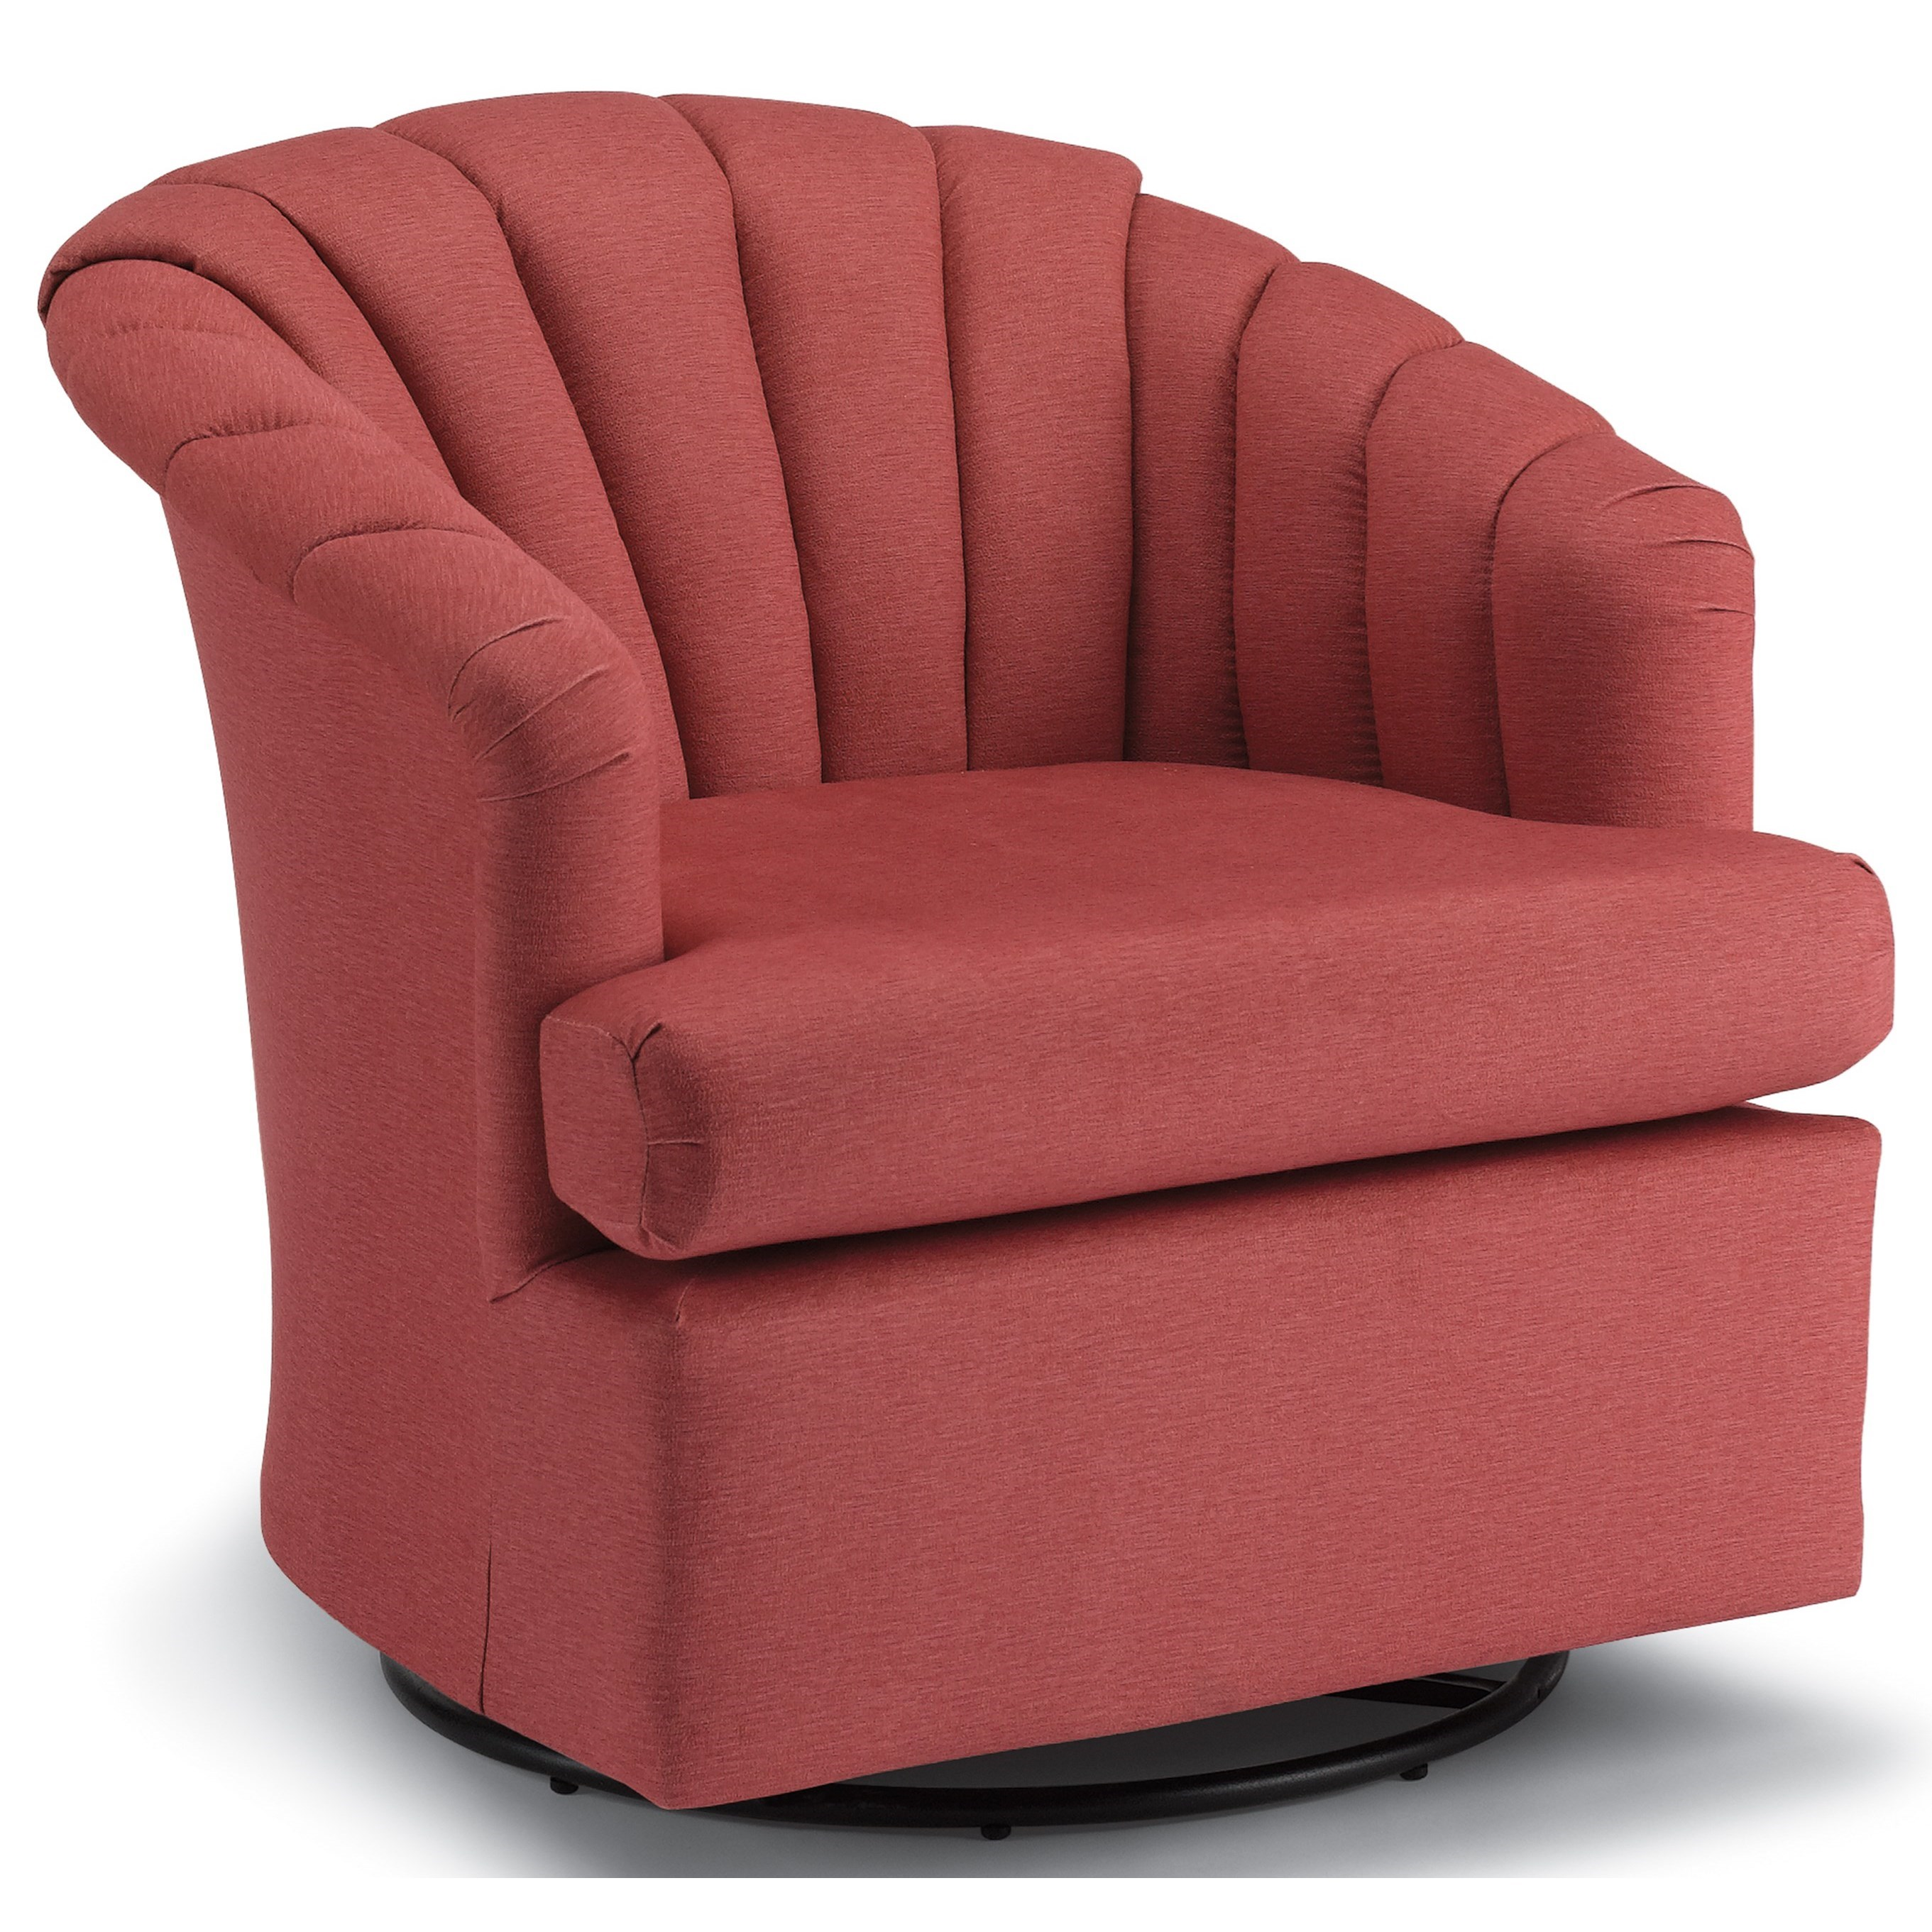 Upholstered Glider Chair Best Home Furnishings Chairs Swivel Barrel Elaine Swivel